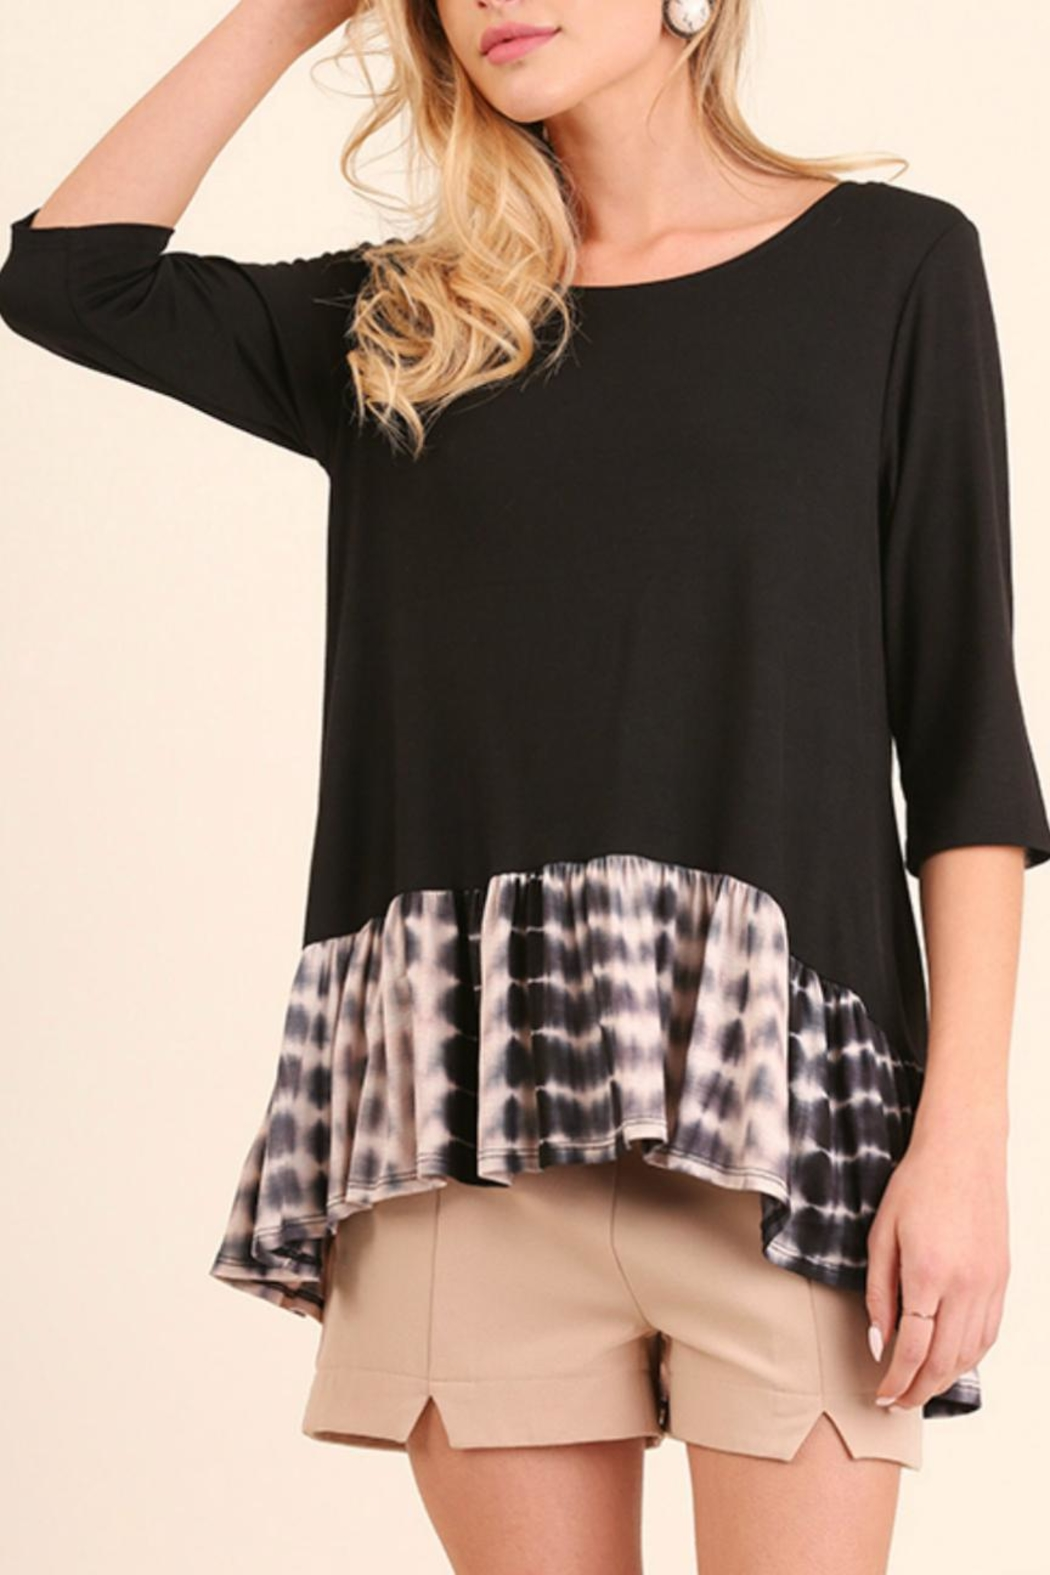 Umgee USA Black Sleeve Tunic Top - Main Image